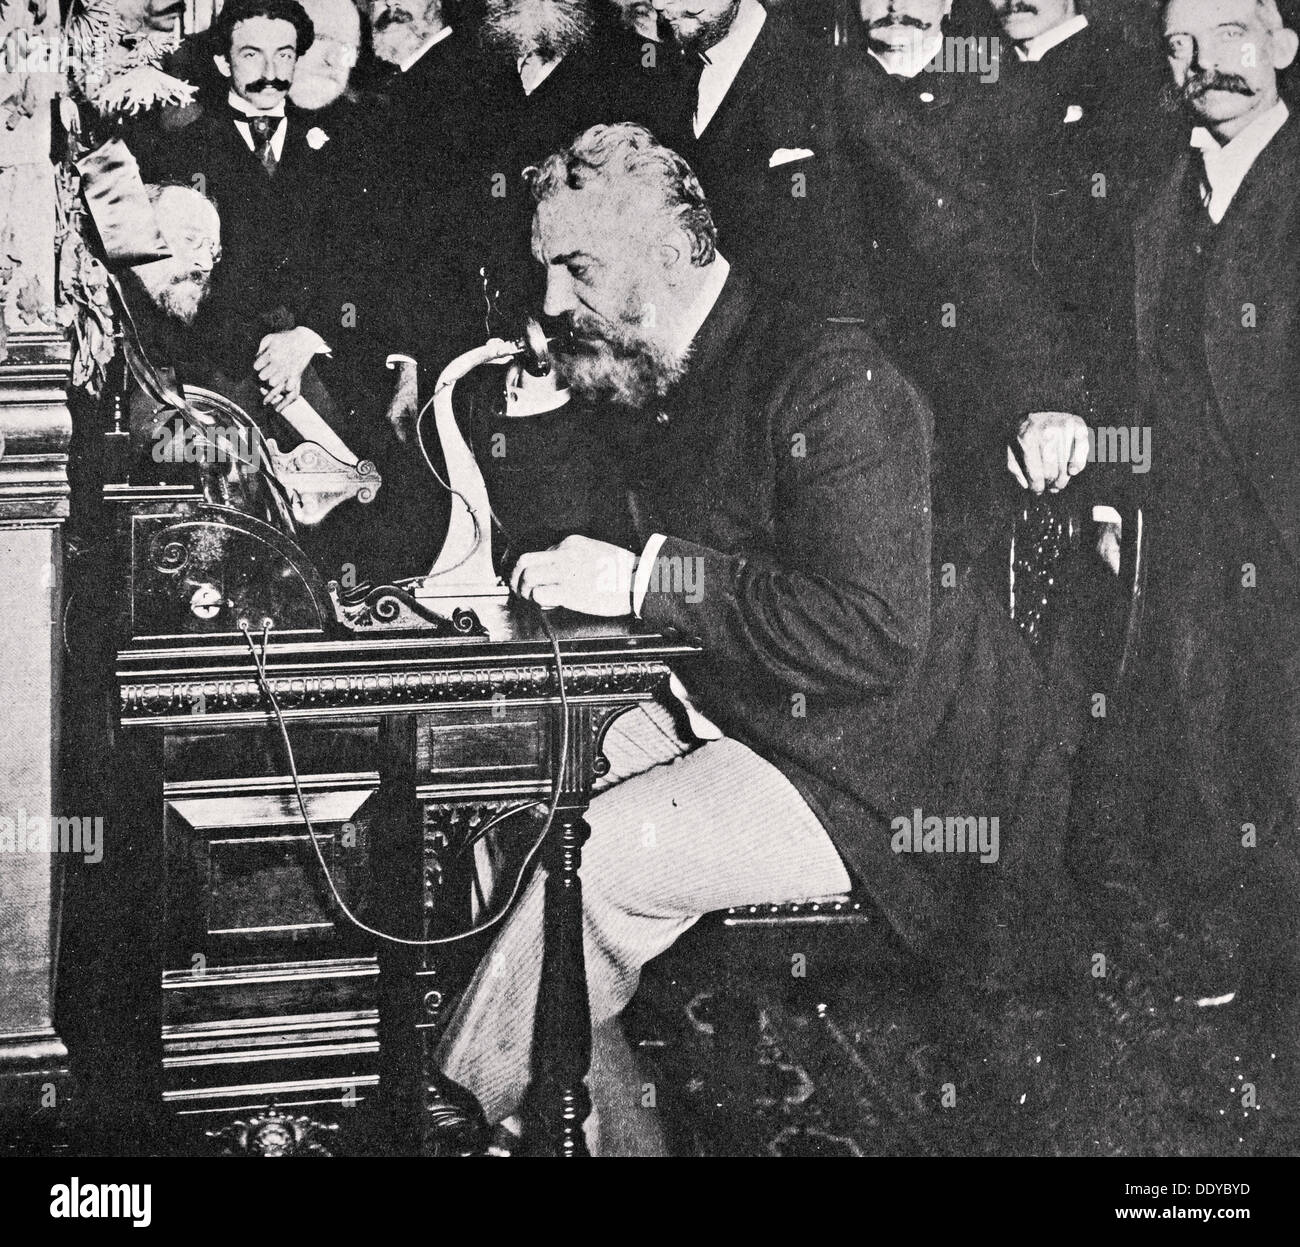 Alexander Graham Bell fait le premier appel téléphonique entre New York et Chicago, USA, 1892. Artiste : Inconnu Photo Stock